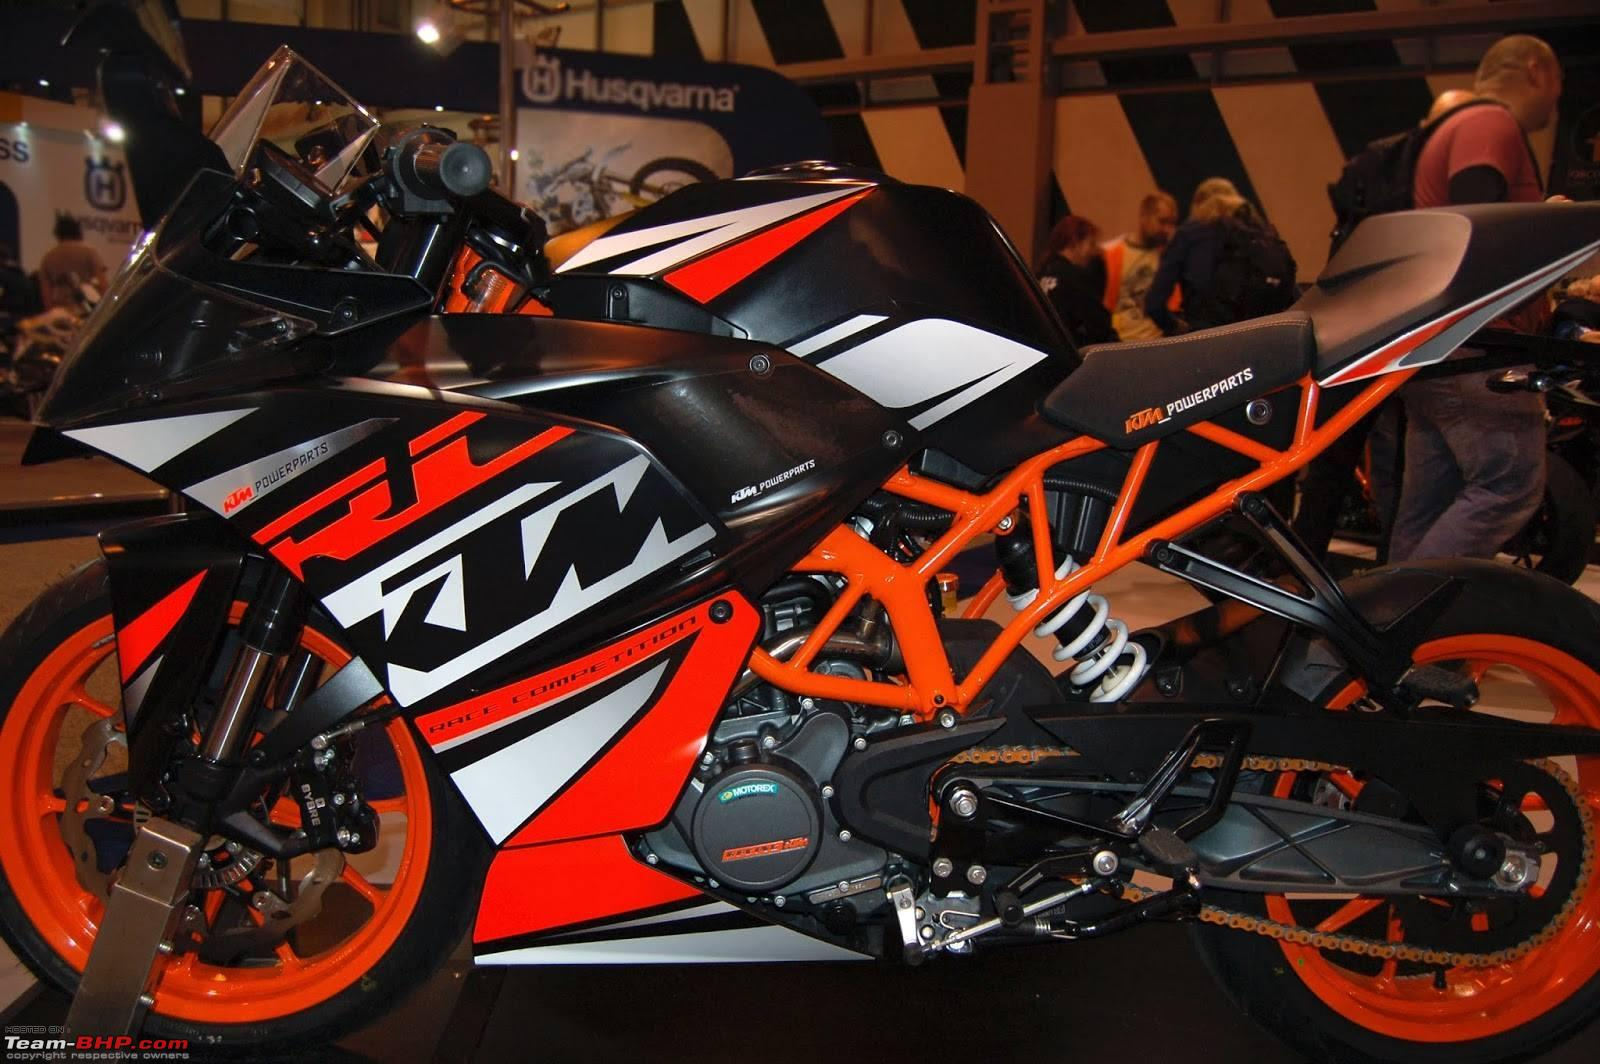 Ktm rc390 now launched for rs 2 05 lakhs 10688264_721177694626240_8868642625454783112_o jpg